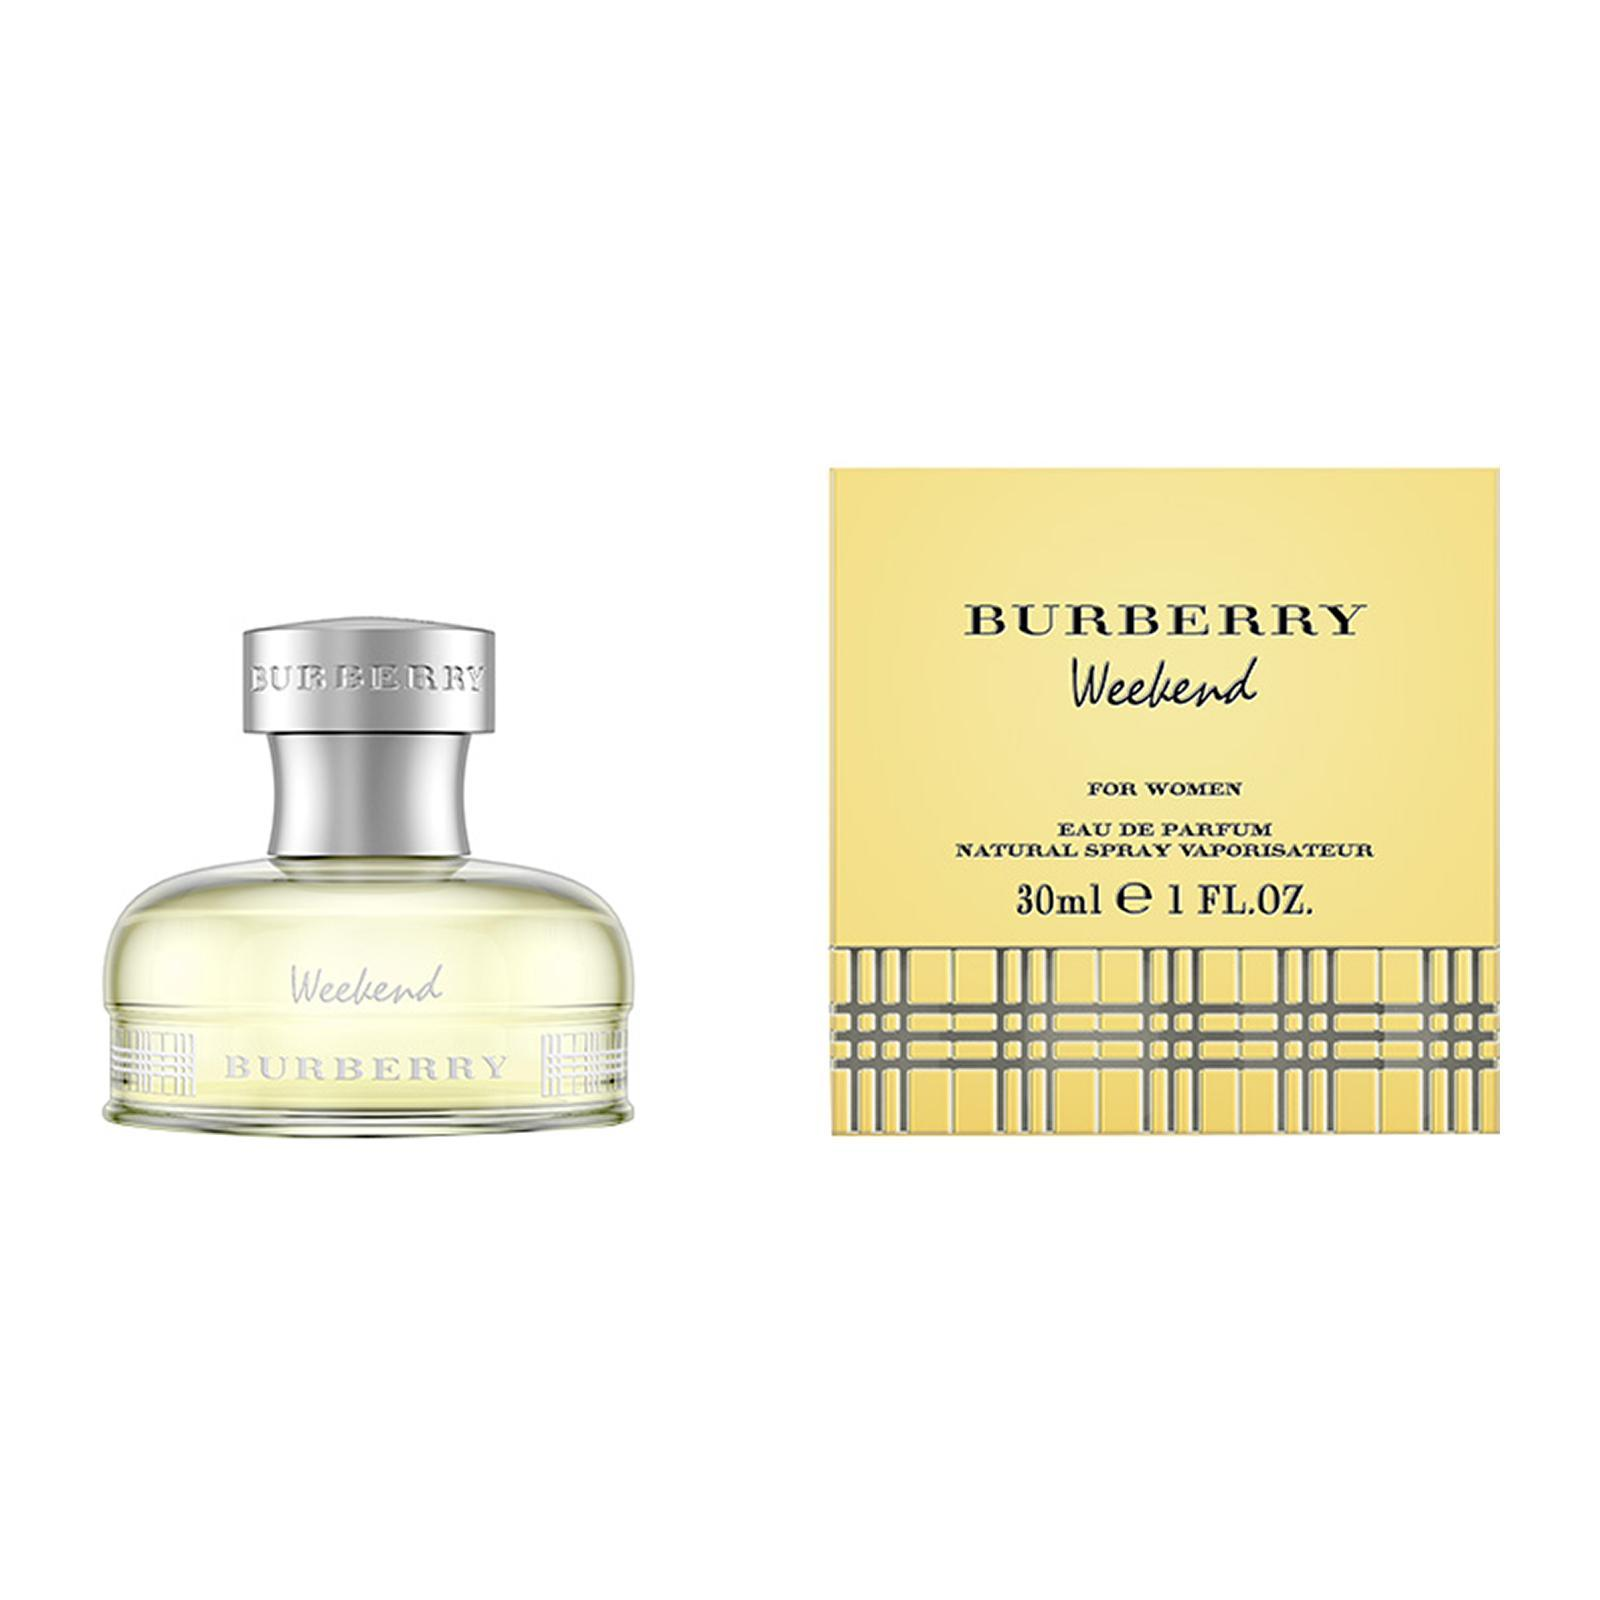 Burberry Weekend For Women Eau De Parfum Perfume Fragrance Spray - By BEAULUXLAB